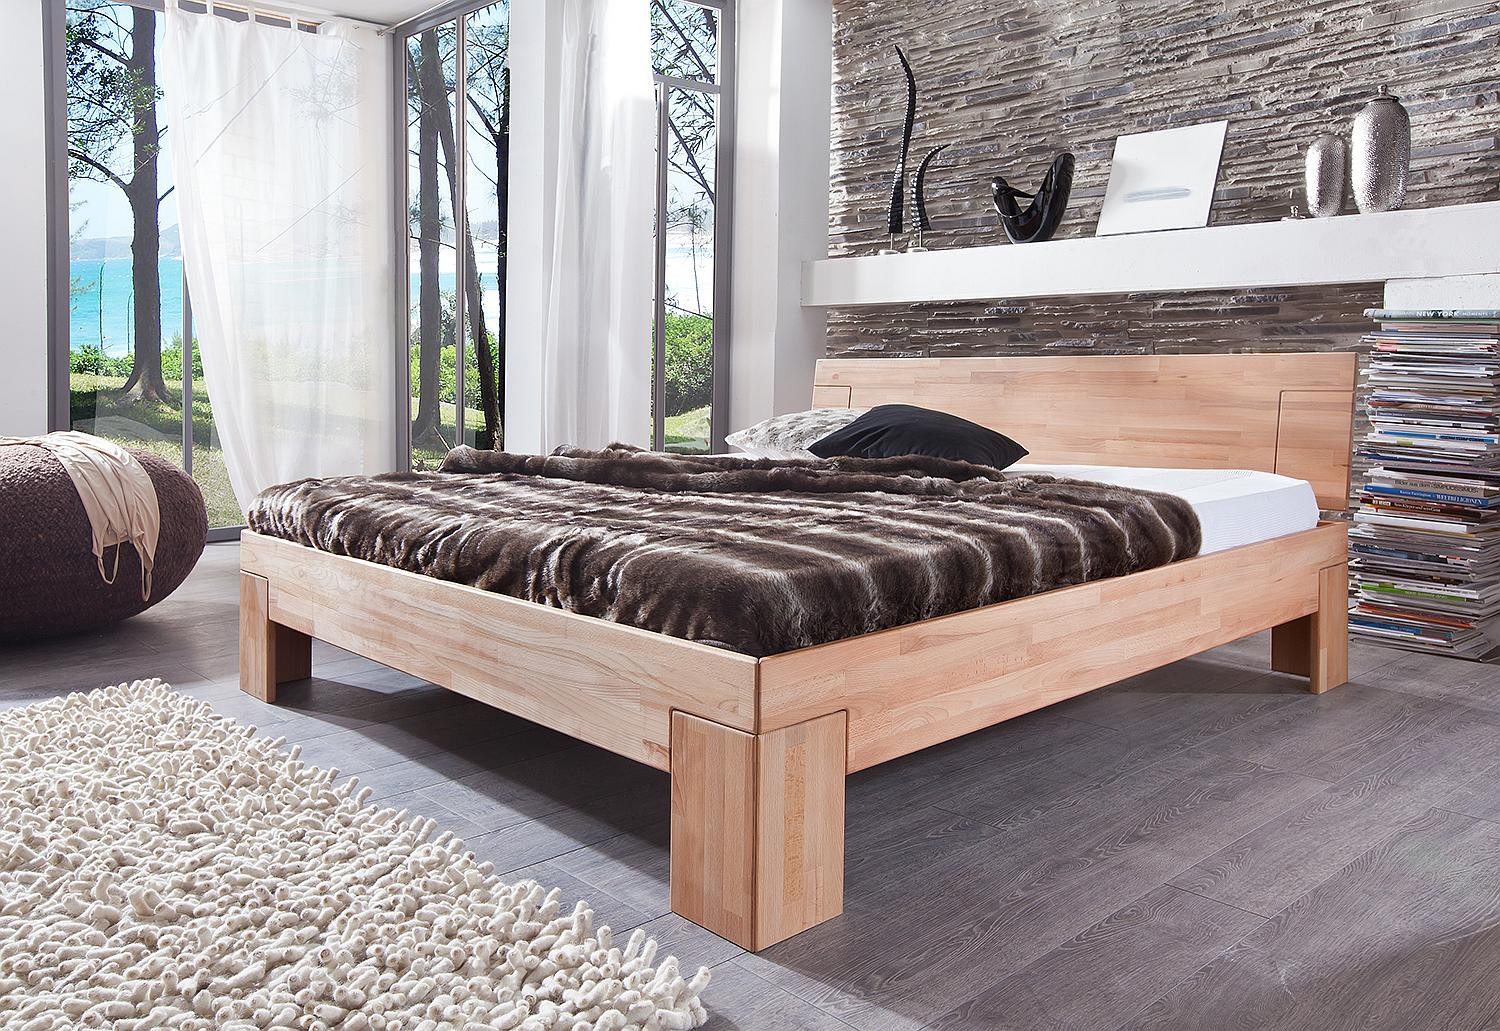 holzbett 140 x 200 cm kernbuche massiv sara. Black Bedroom Furniture Sets. Home Design Ideas